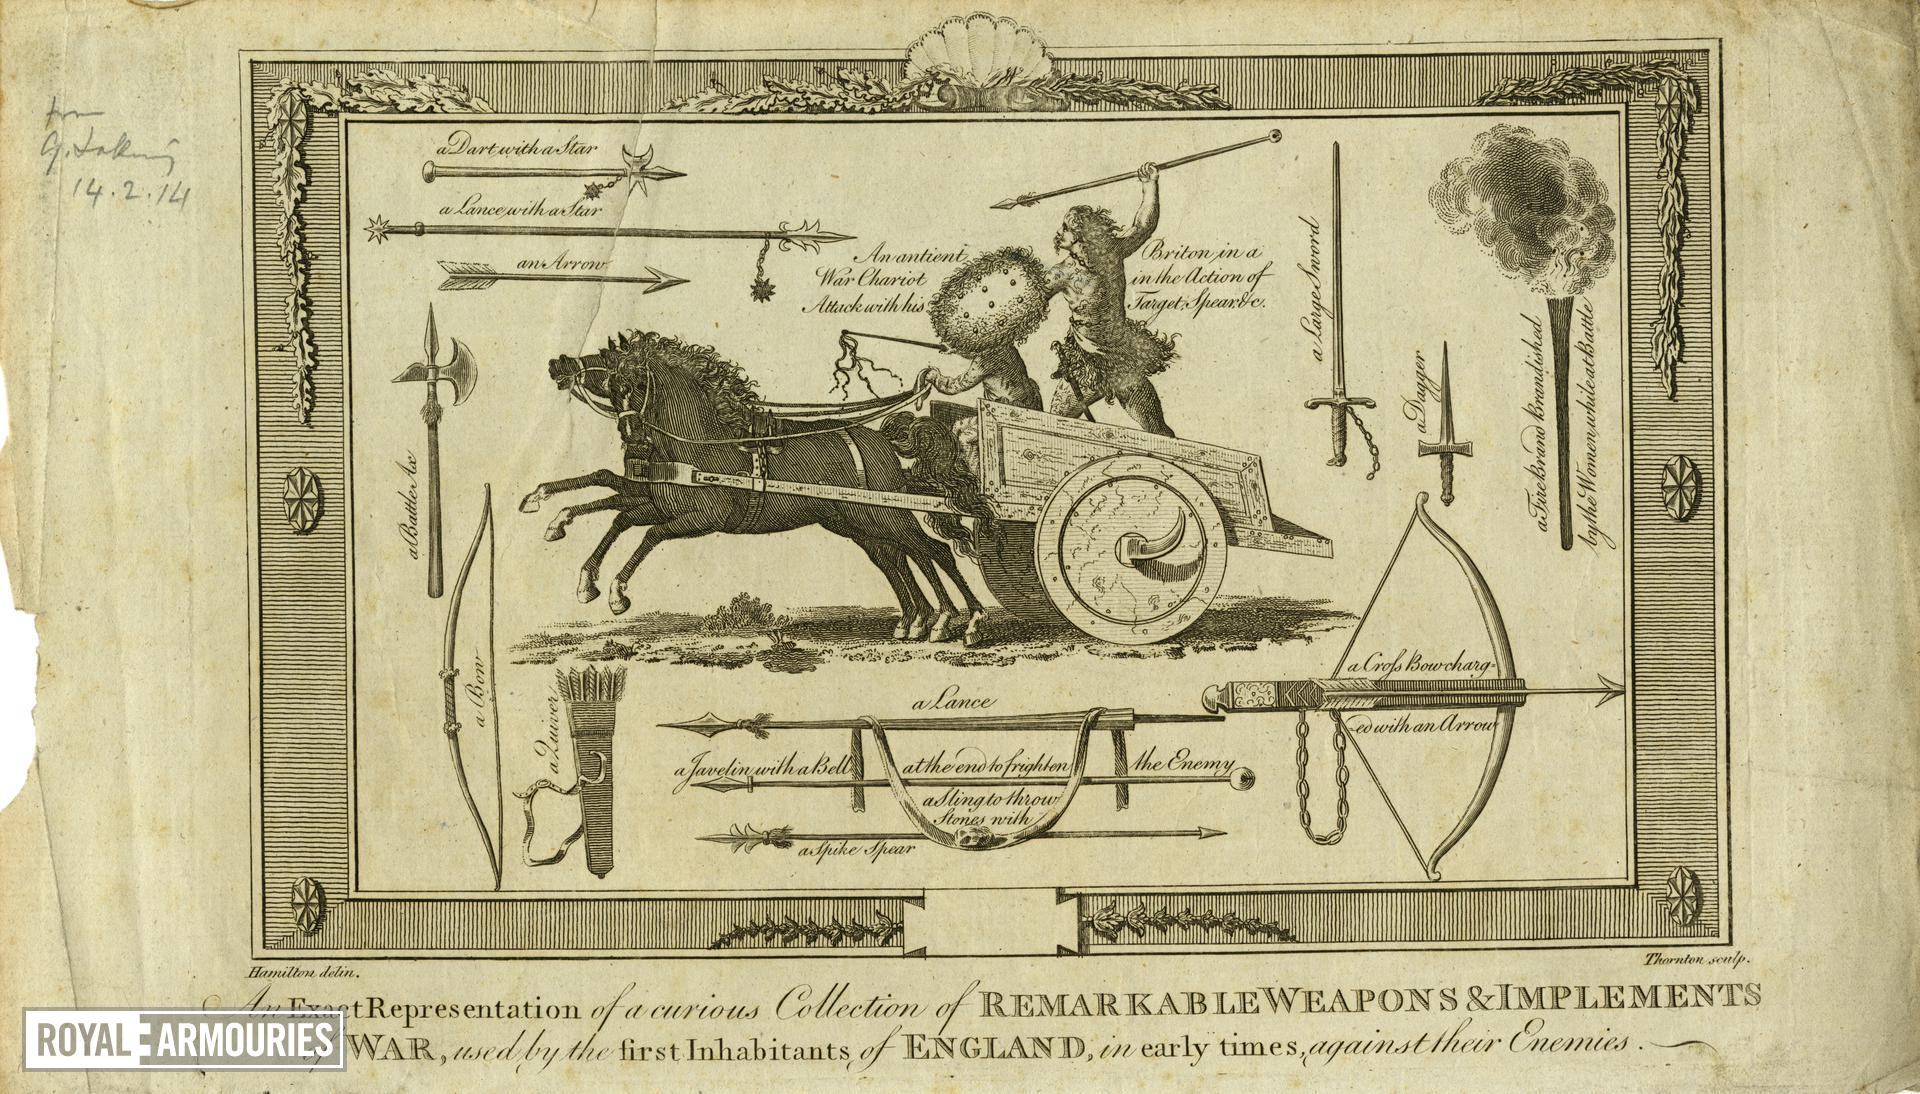 Print 'An exact representation of a curious collection of remarkable weapons and instruments of war'